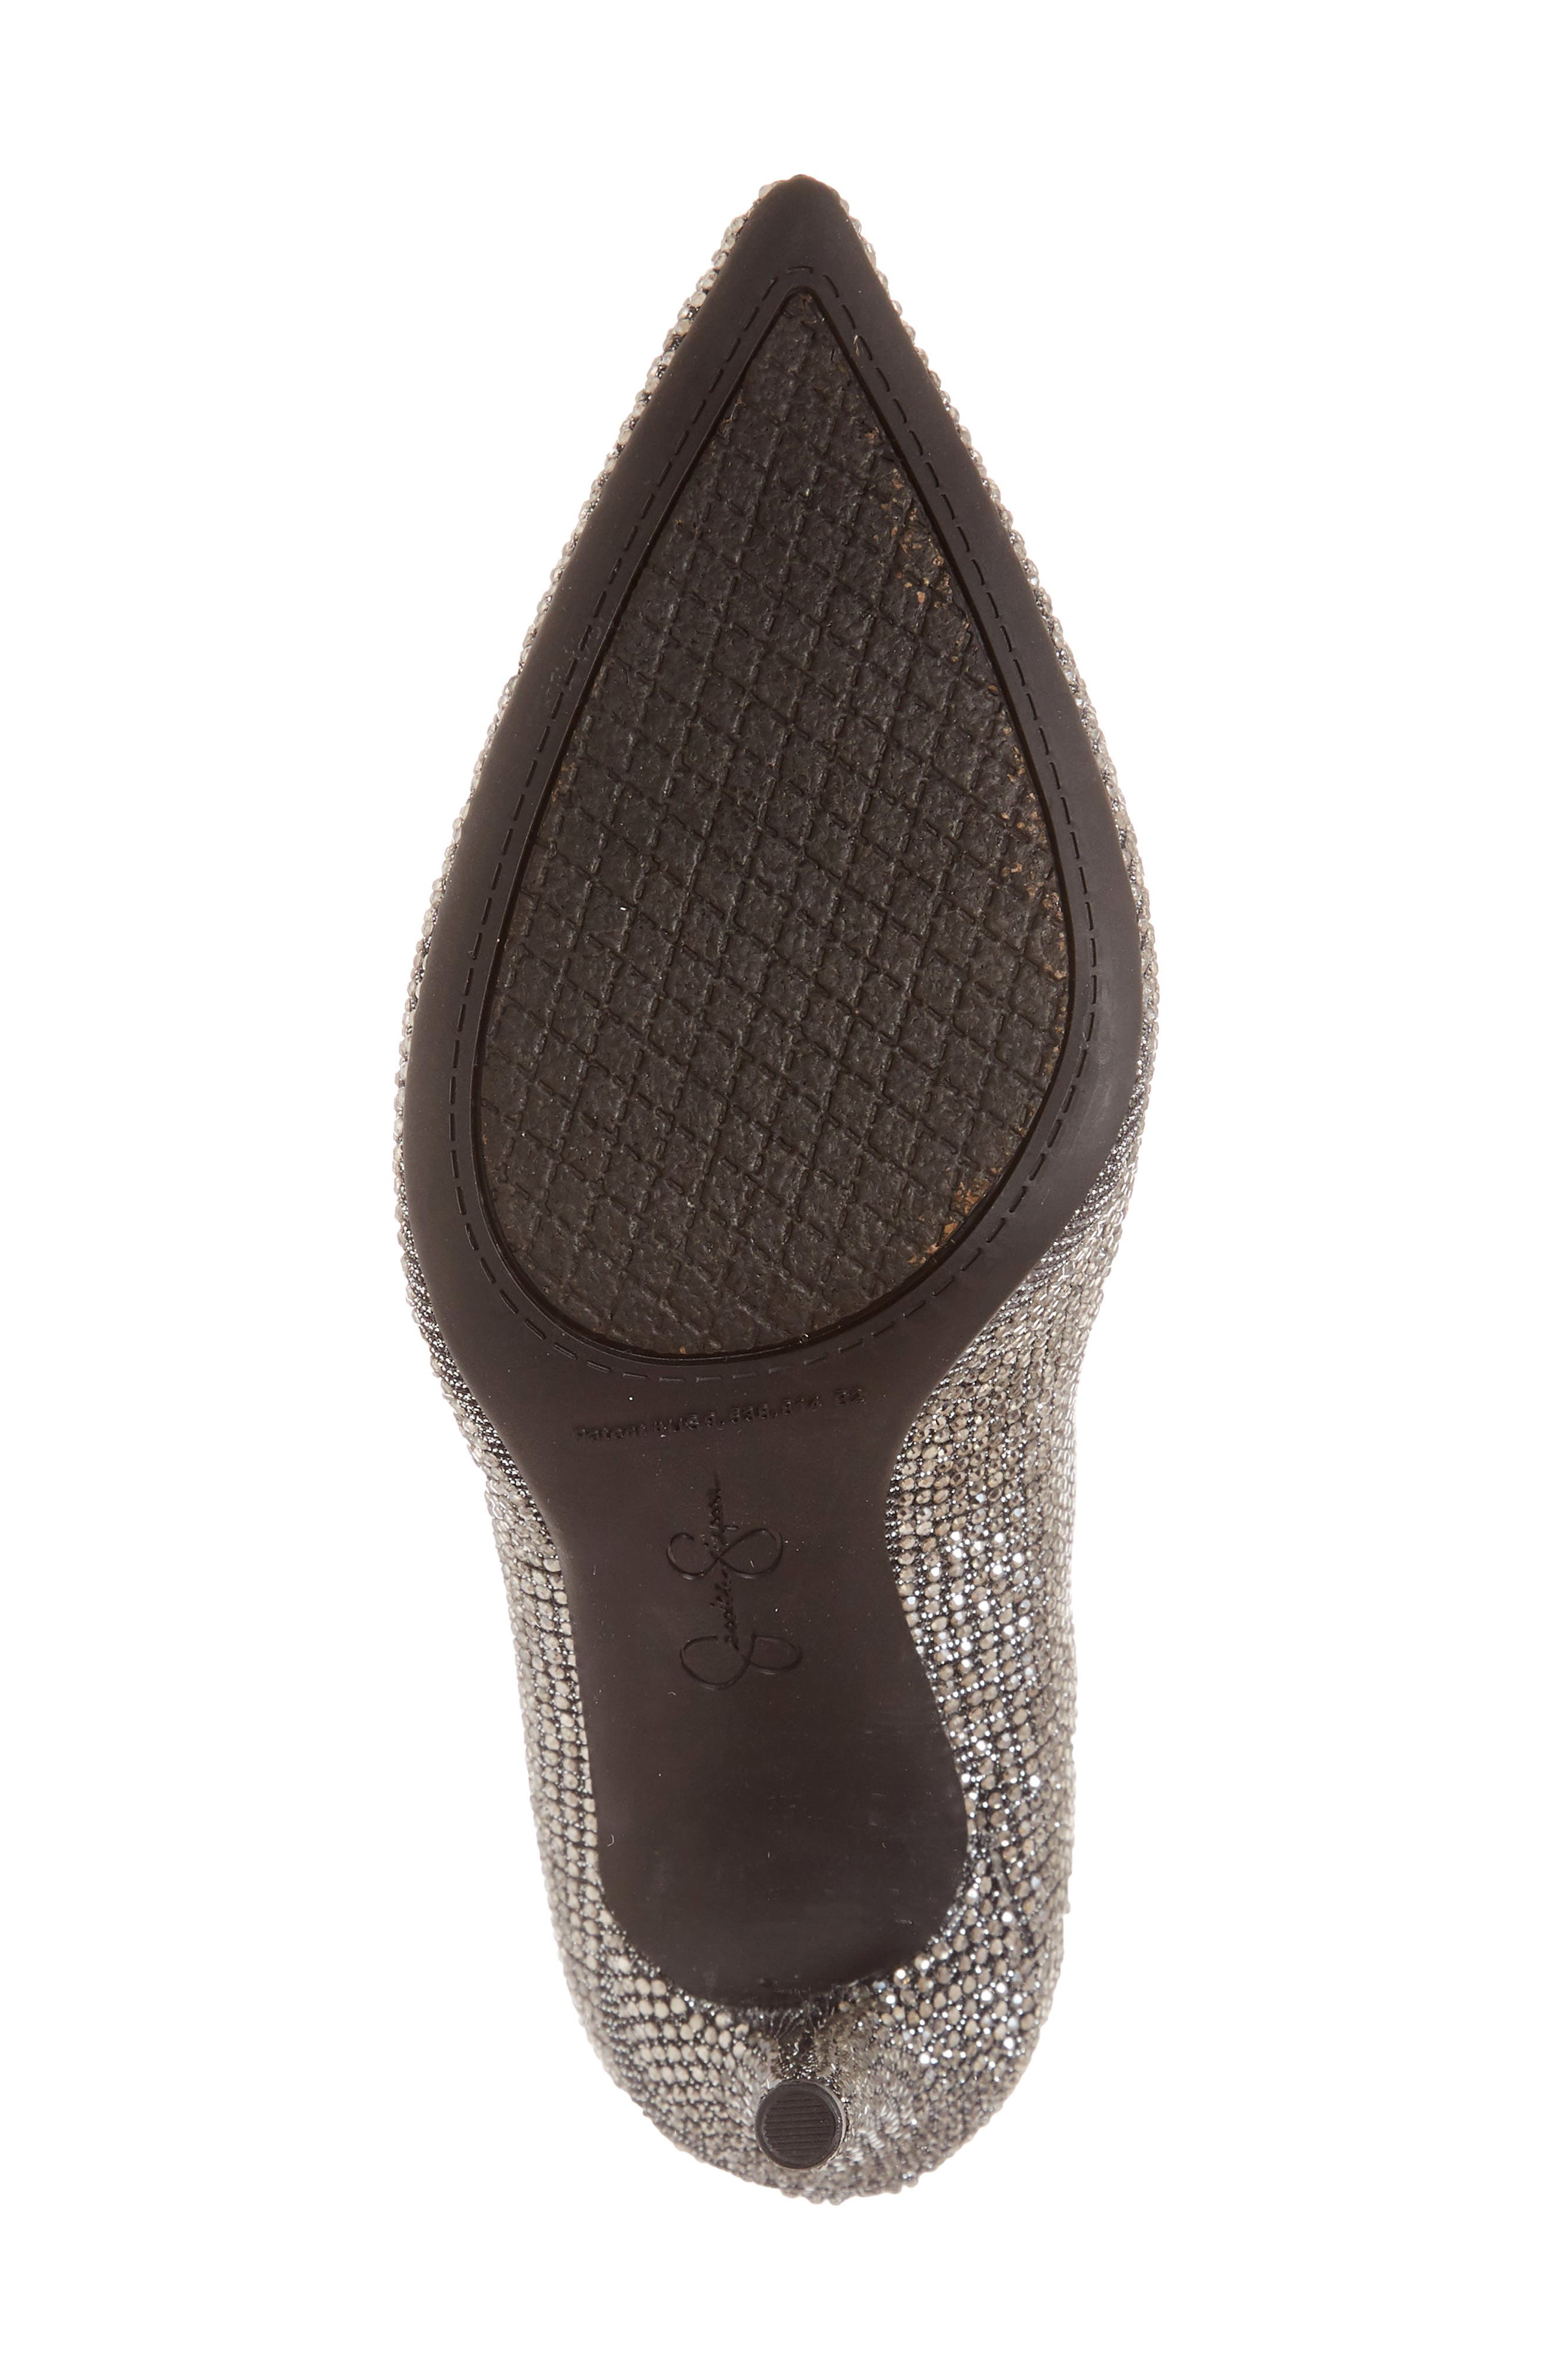 Lasnia Embellished Bootie,                             Alternate thumbnail 6, color,                             PEWTER MULTI